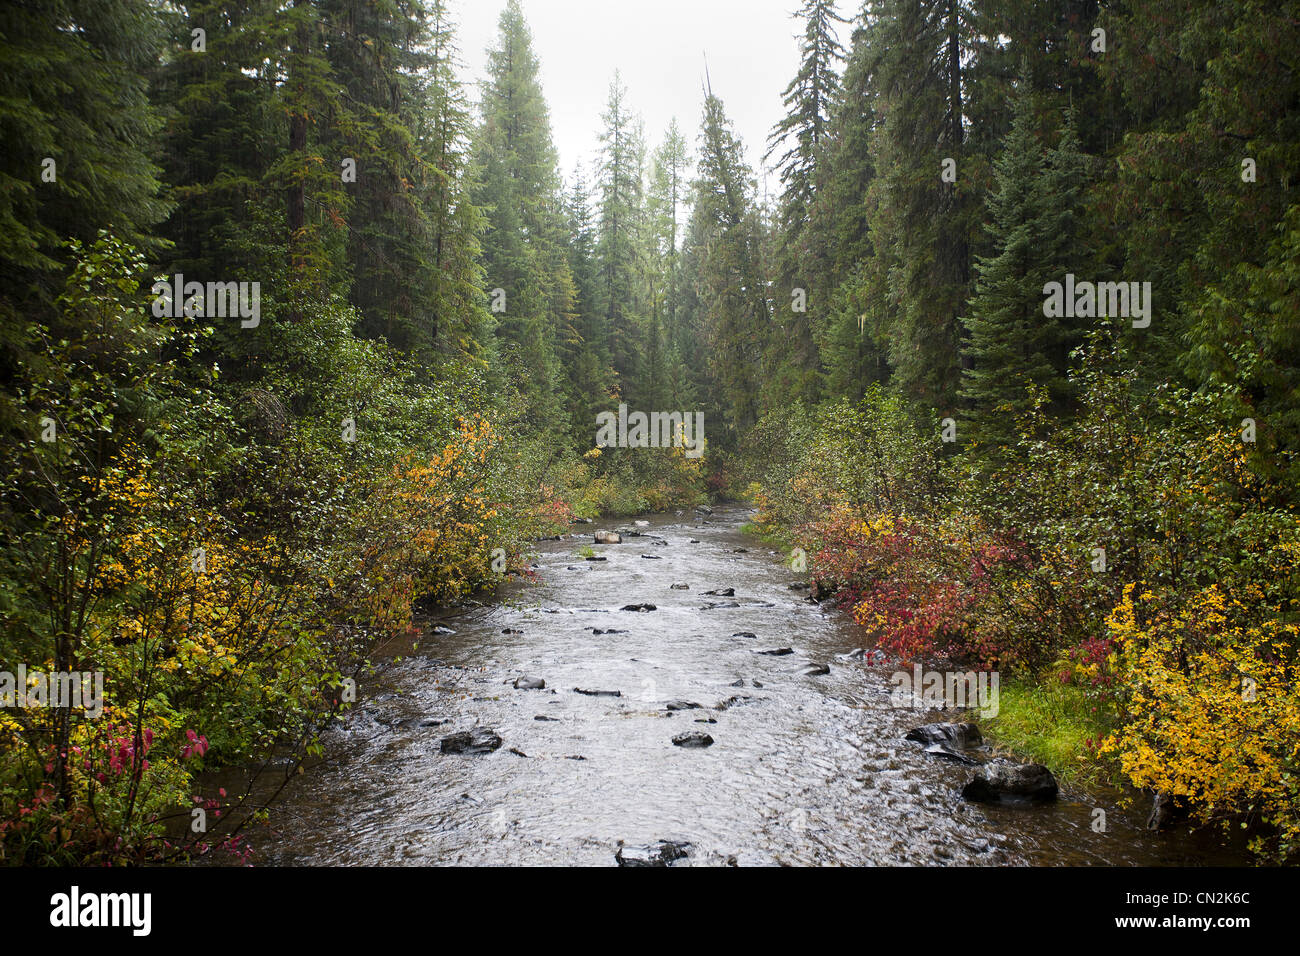 Misty River in foresta, Montana, USA Immagini Stock